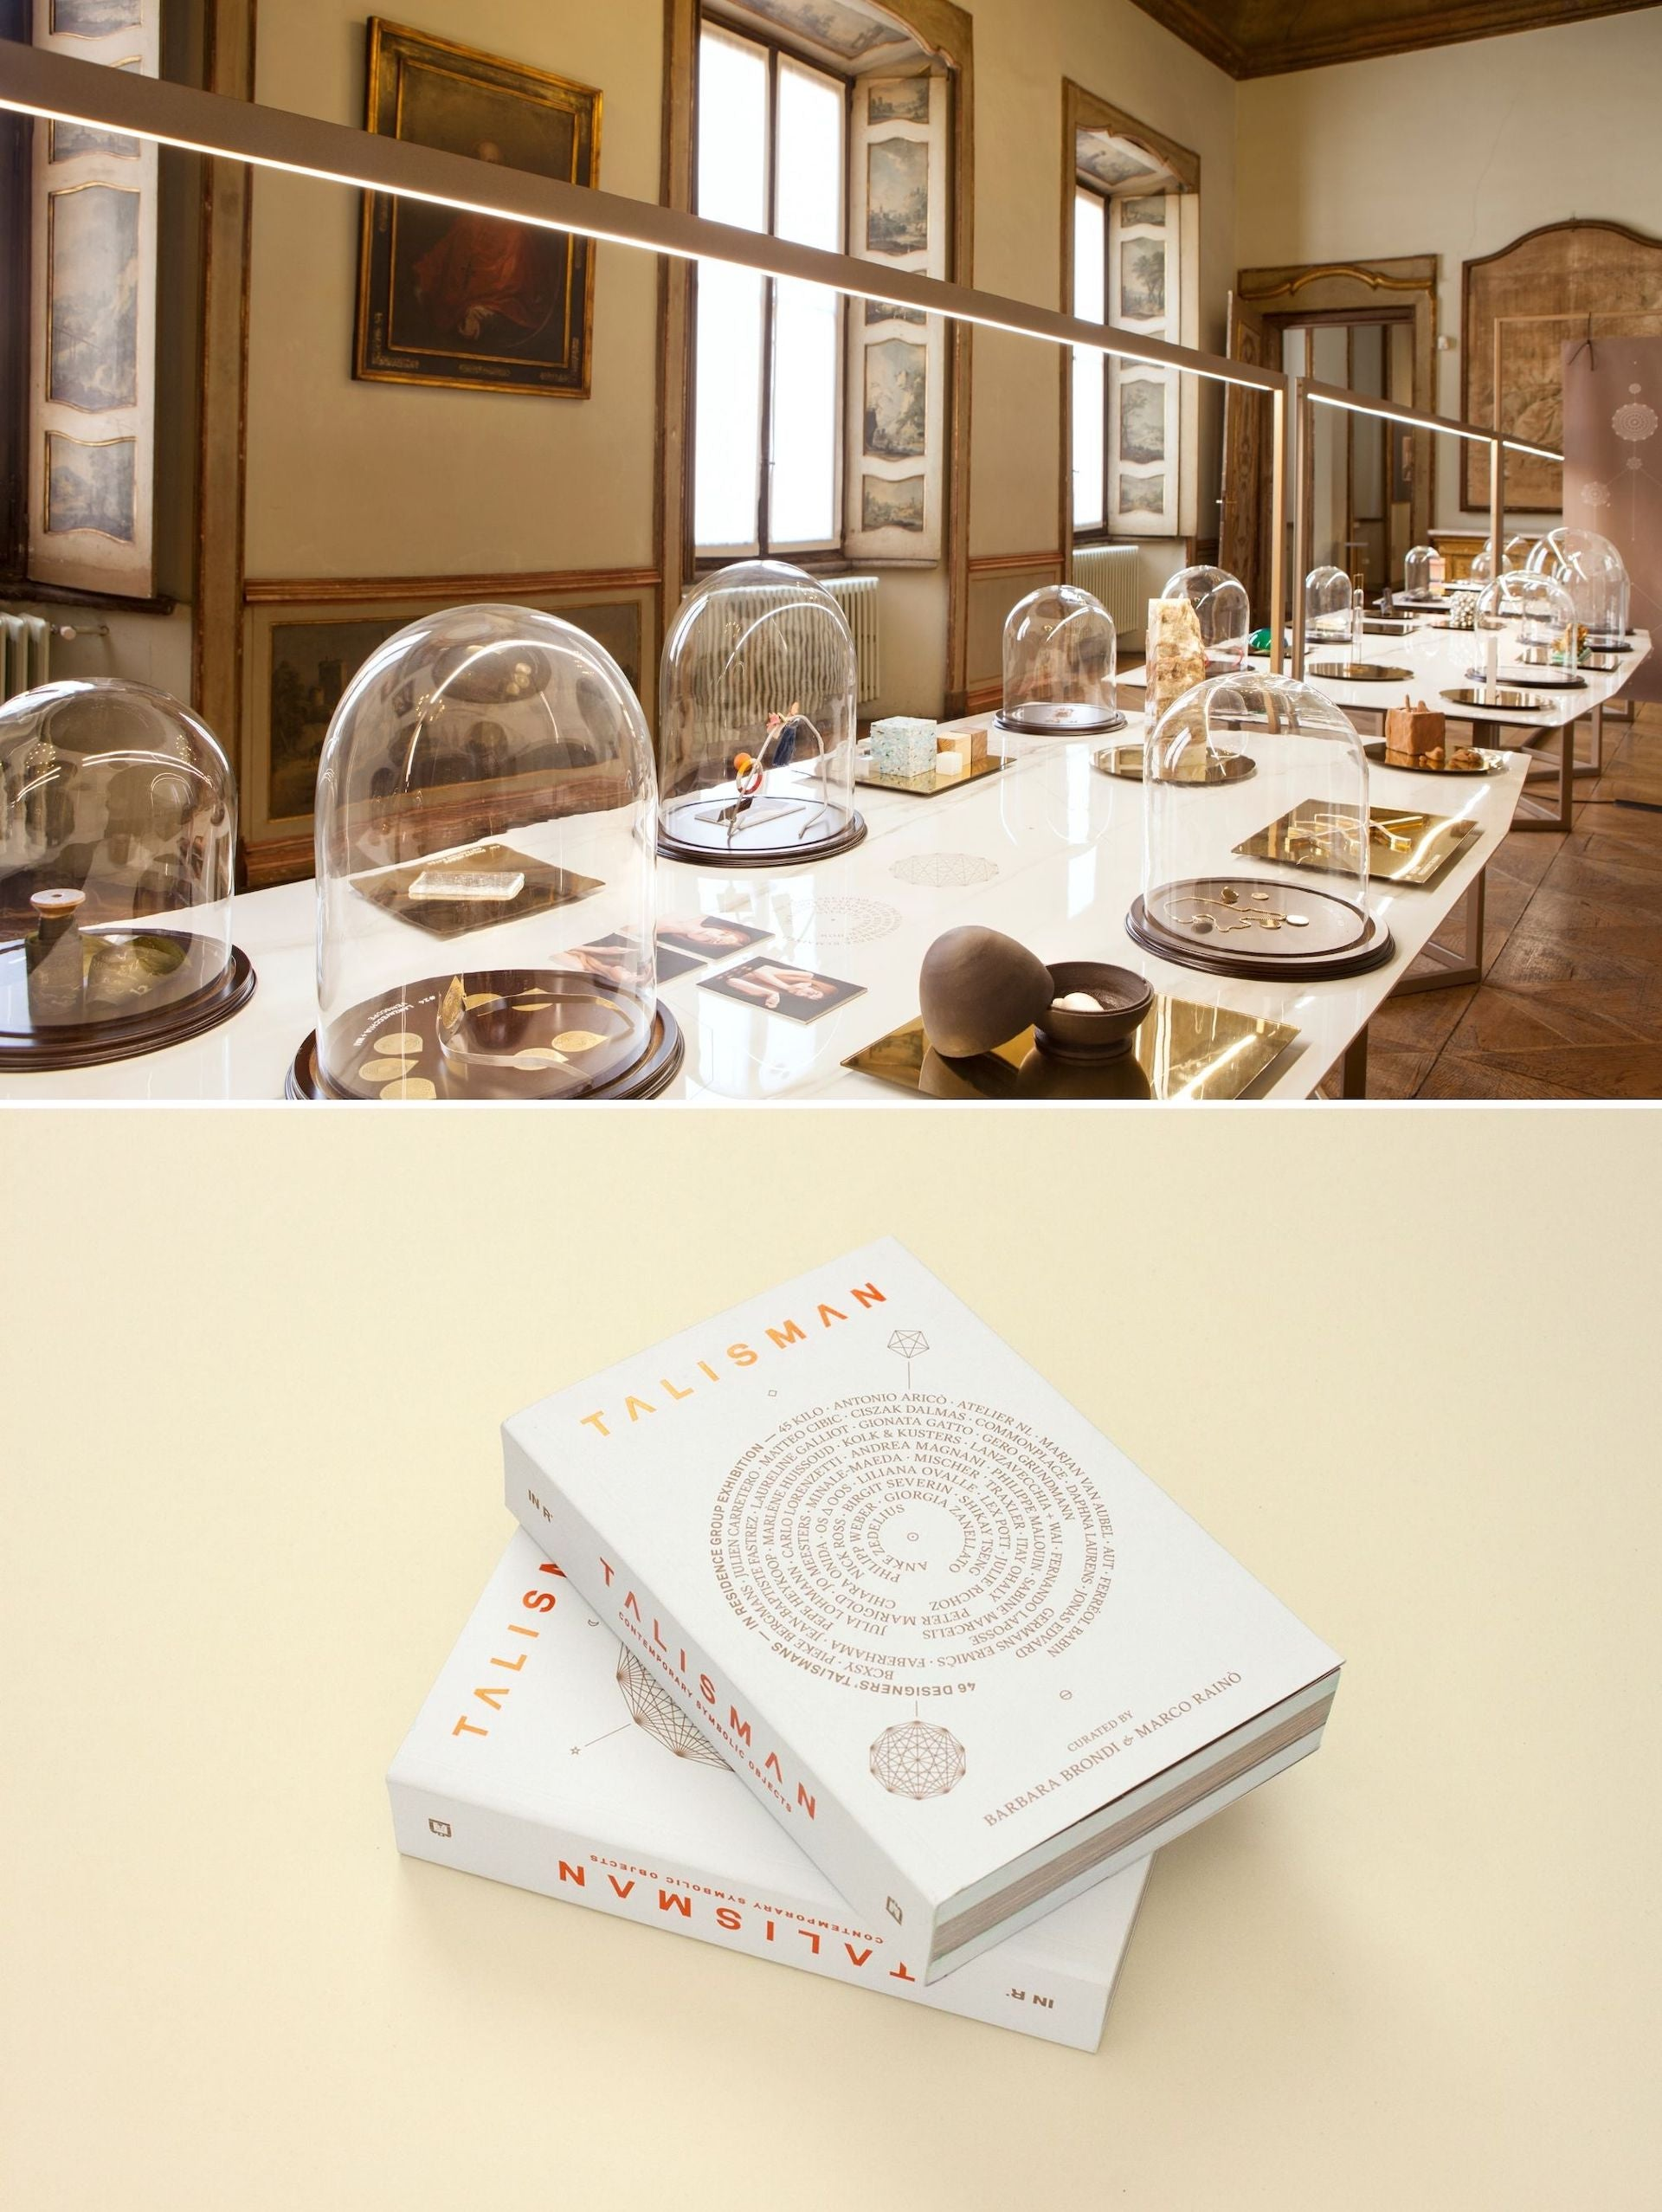 The Talisman exhibition and book. Top photo by Tullio Deorsola; all photos © IN Residence